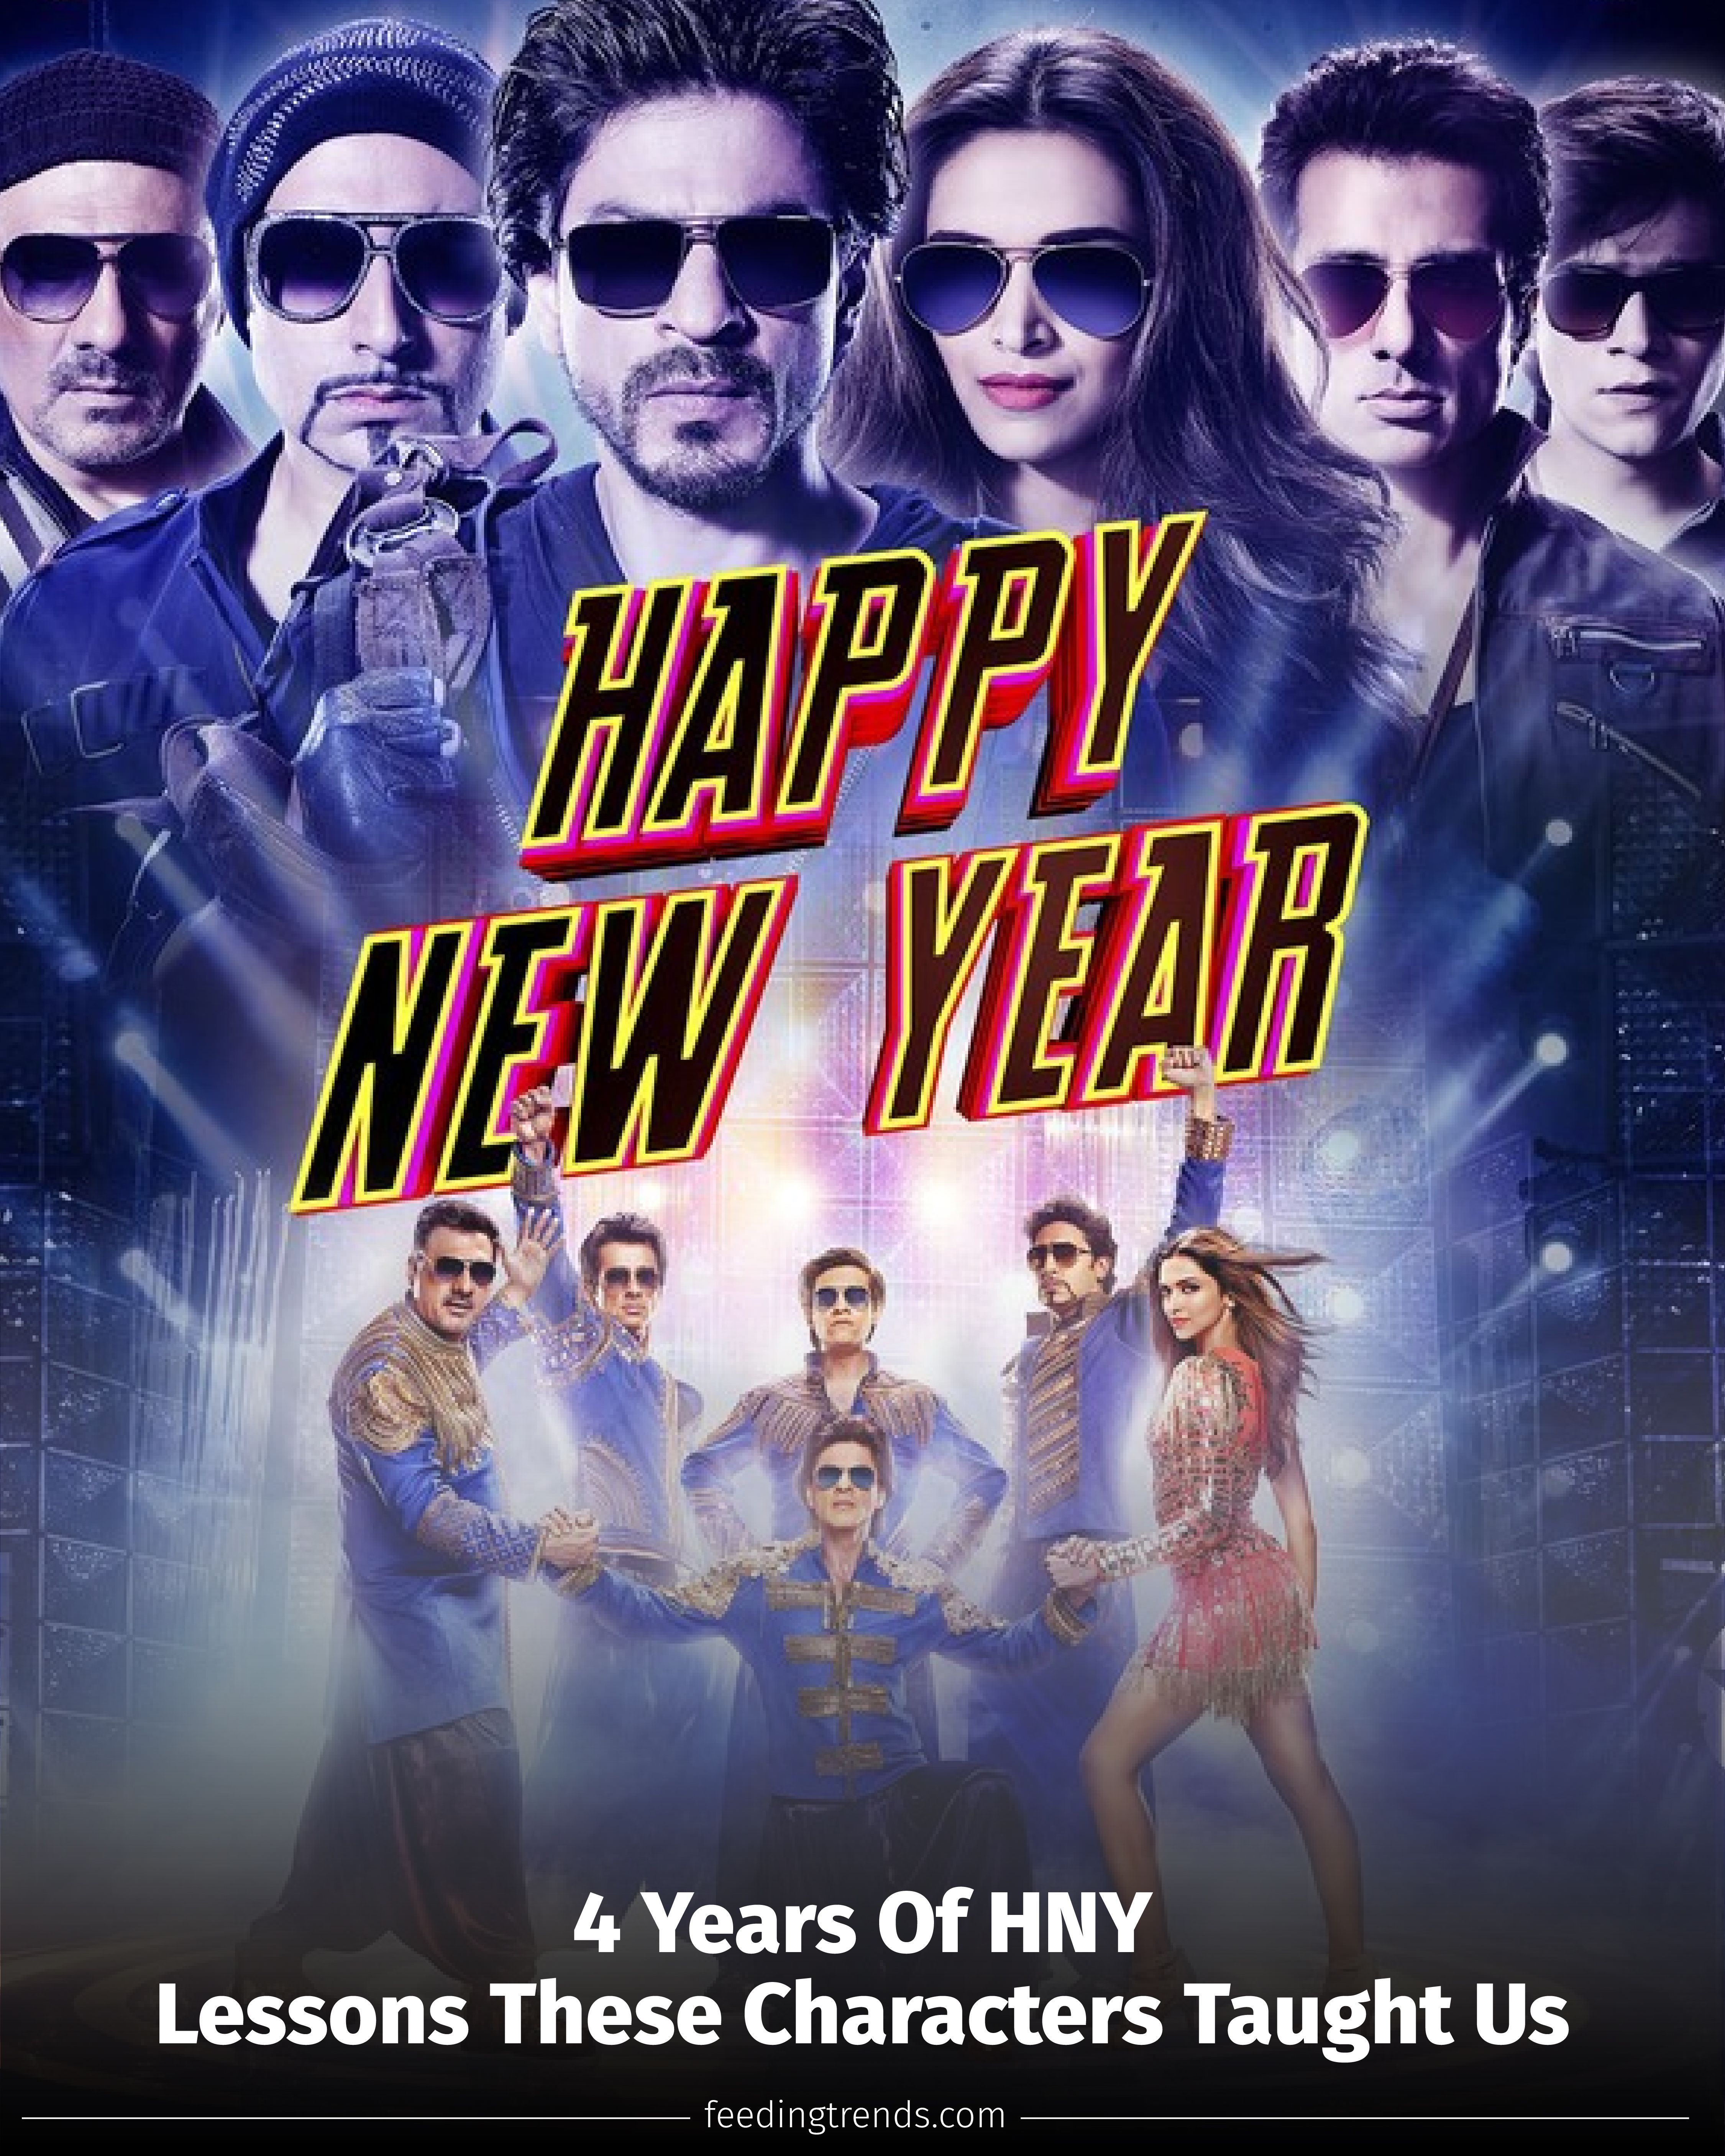 Pin By Feeding Trends On Happy New Year Movie In 2020 Happy New Year Movie Happy New Year Youtube Happy New Year 2014